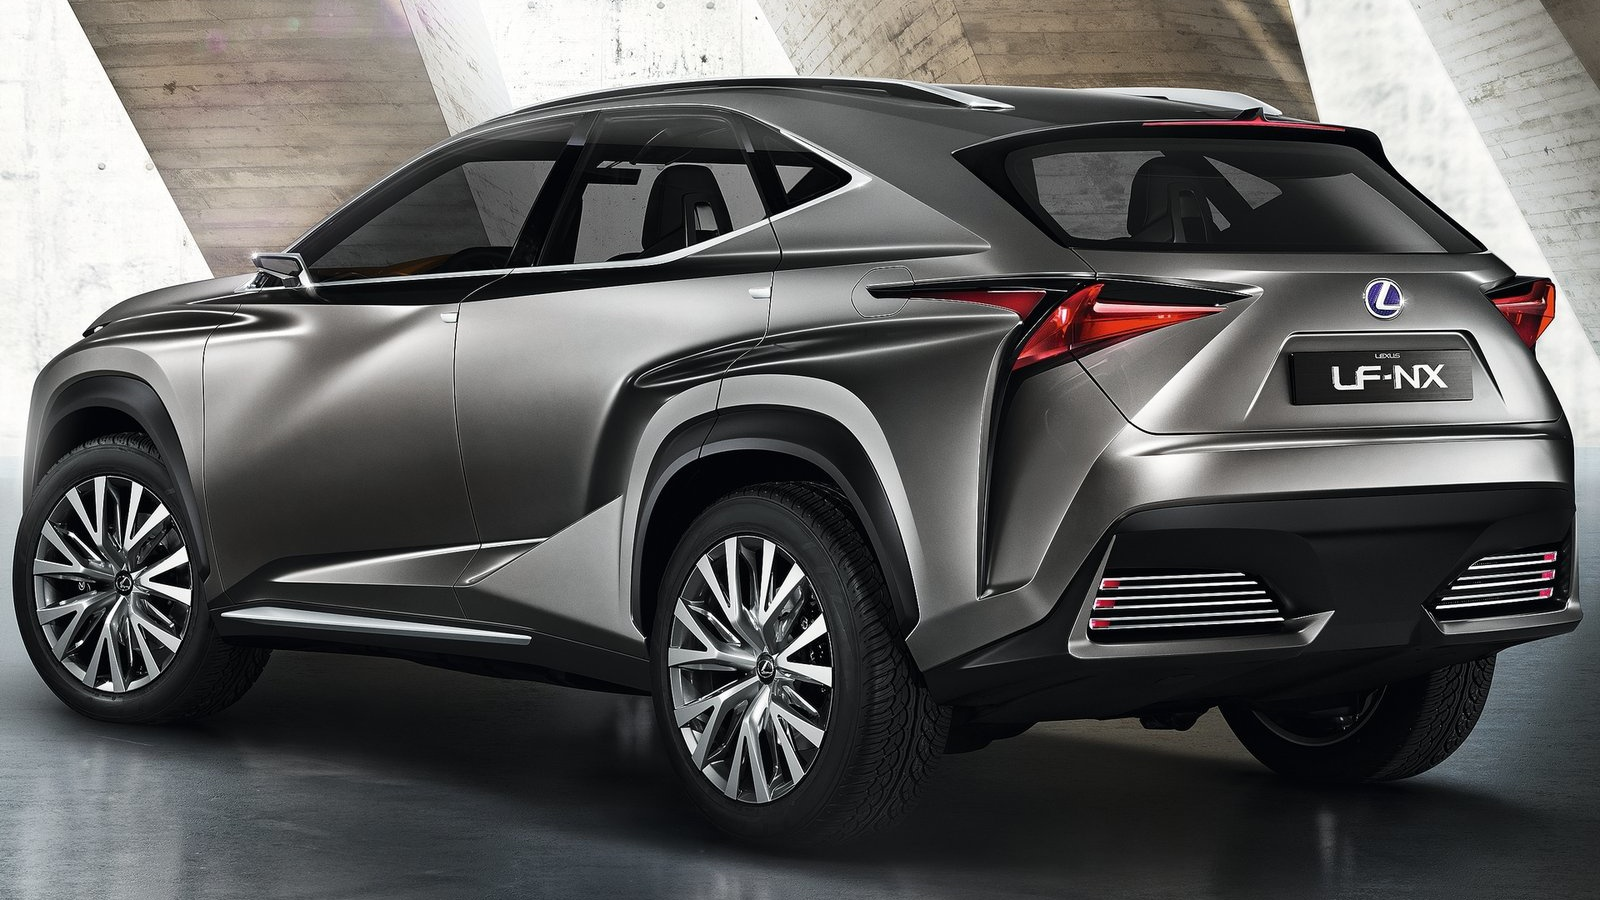 Lexus-LF-NX_Concept_2013_1600x1200_wallpaper_03_Snapseed